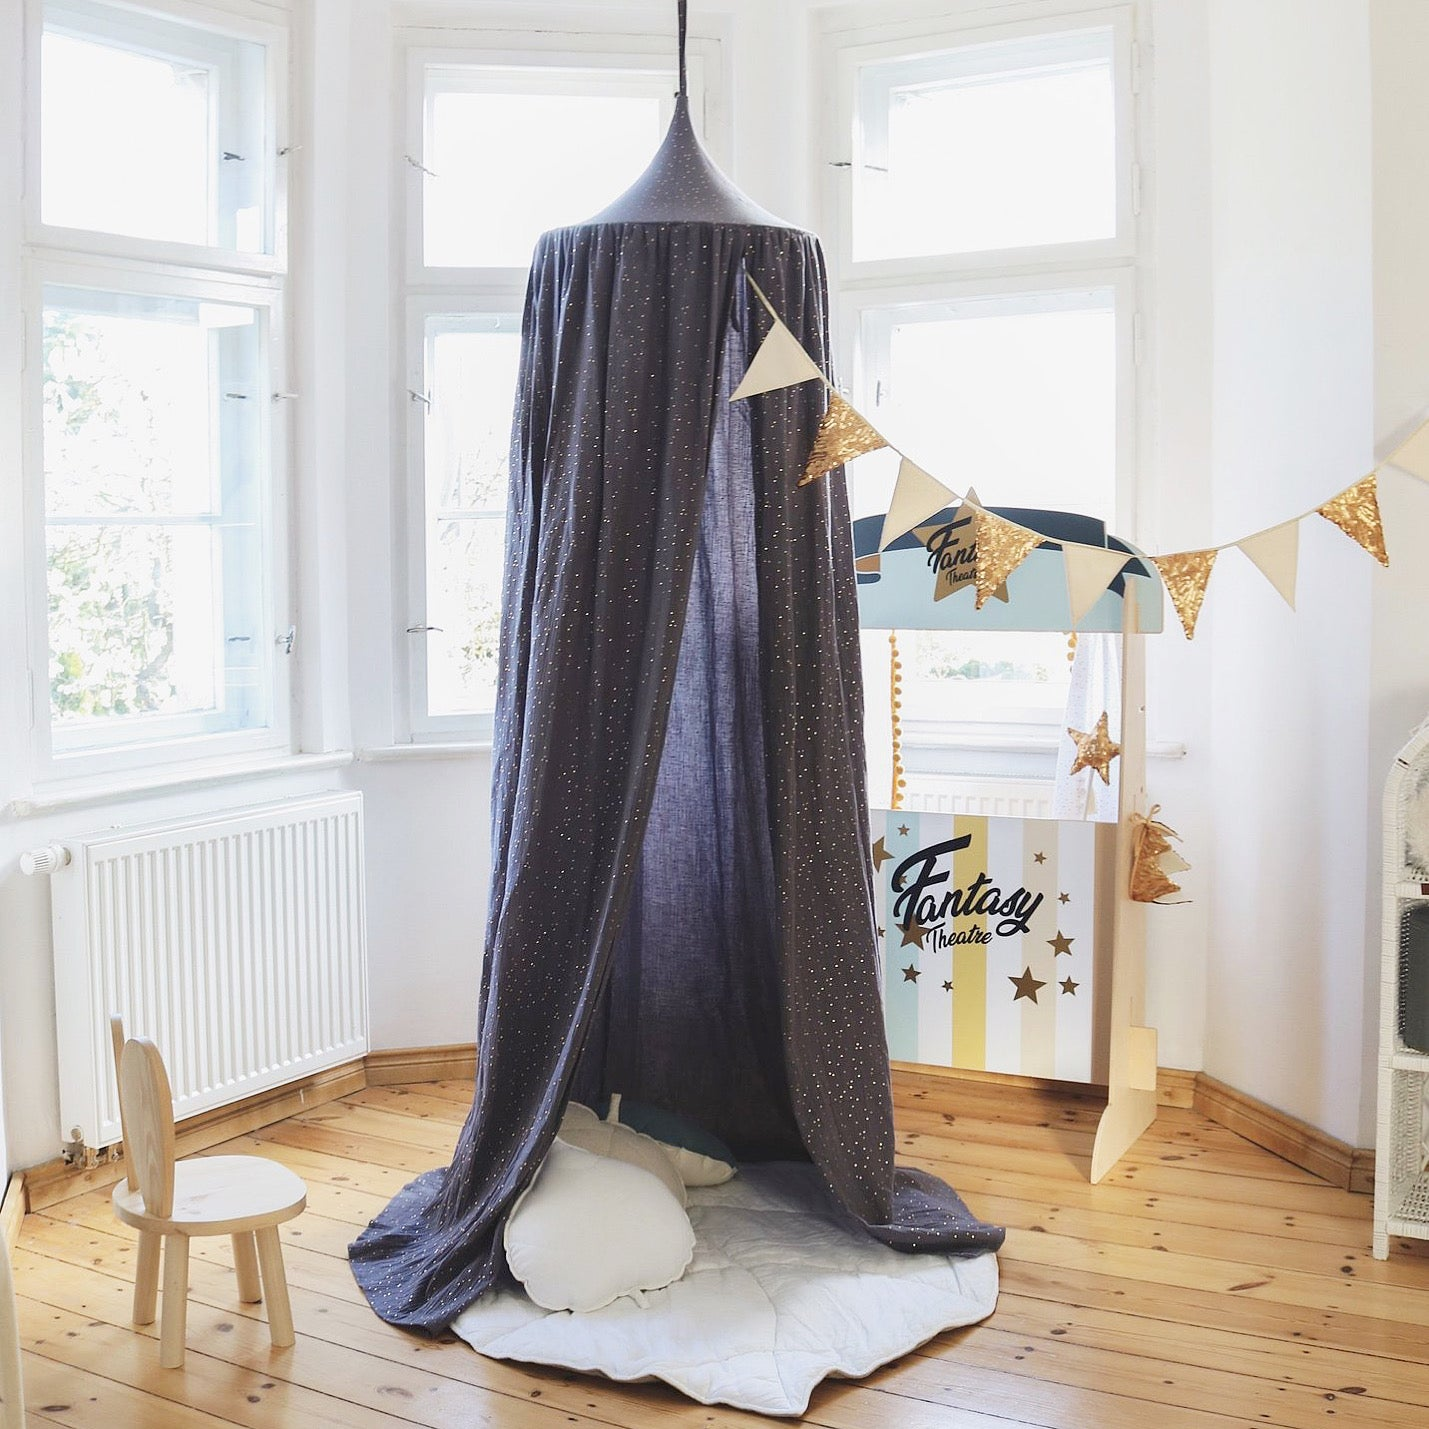 Anthracite Indoor Canopy - The Quirky Home Co